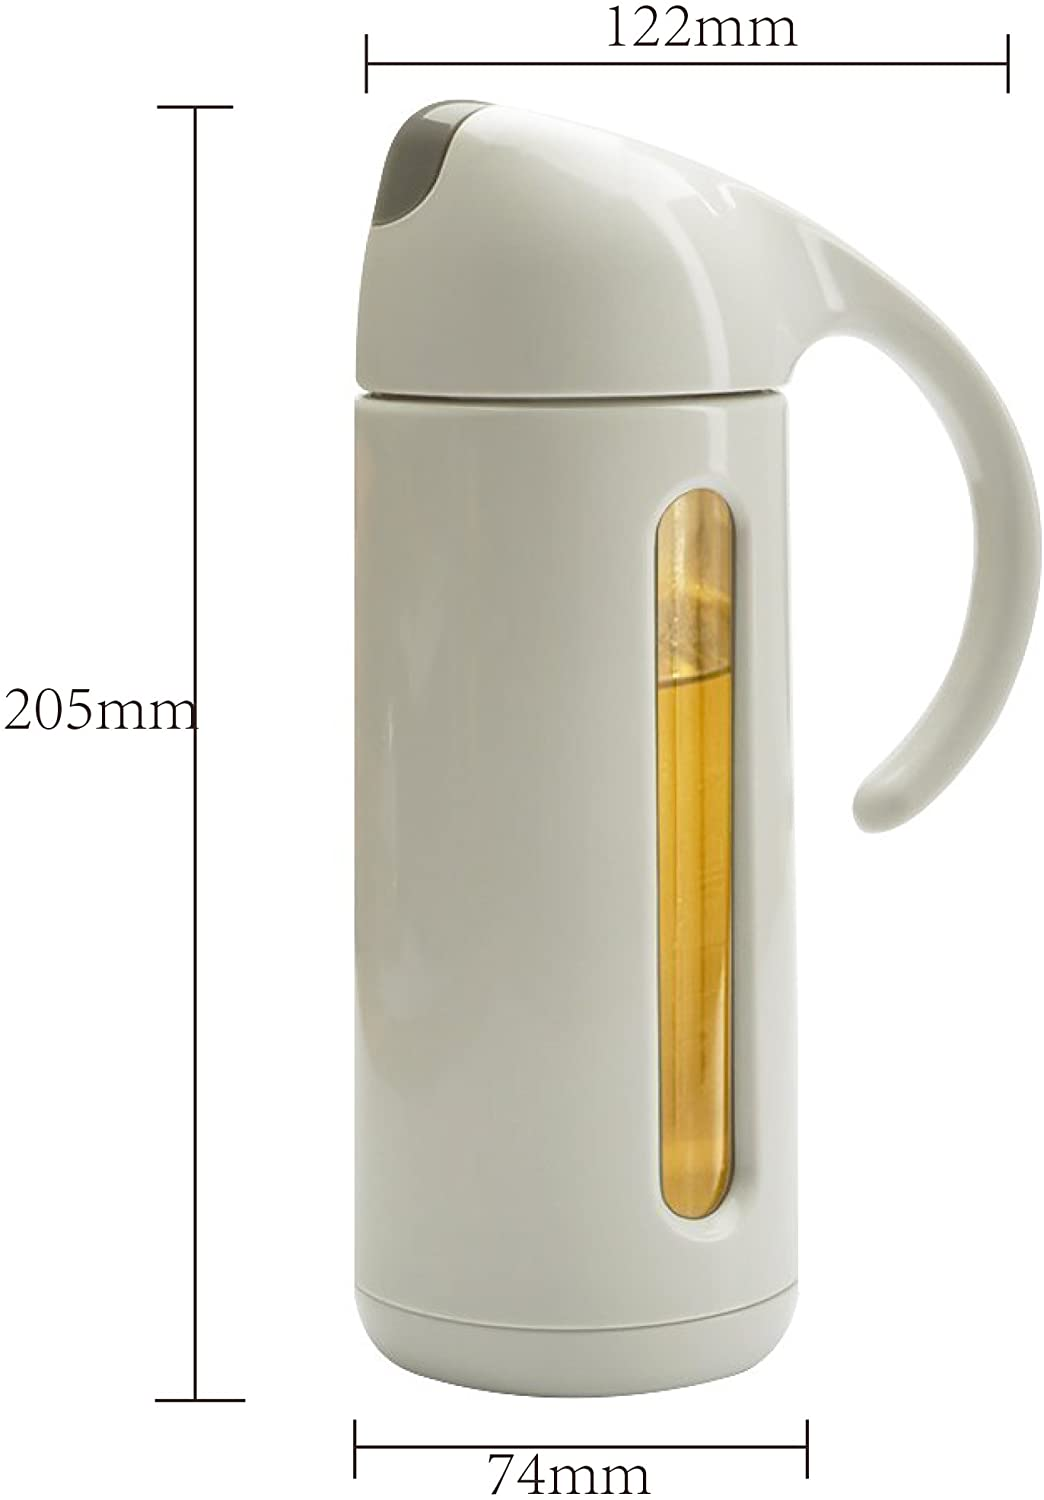 Olive Oil Dispenser Bottle for Kitchen-Glass Vinegar Sauce Condiment Container with Ergonomic Non Slip Handle & Automatic Stopper,Precision Spout–Kitchen Accessories (11 Oz / 320ml Grey)